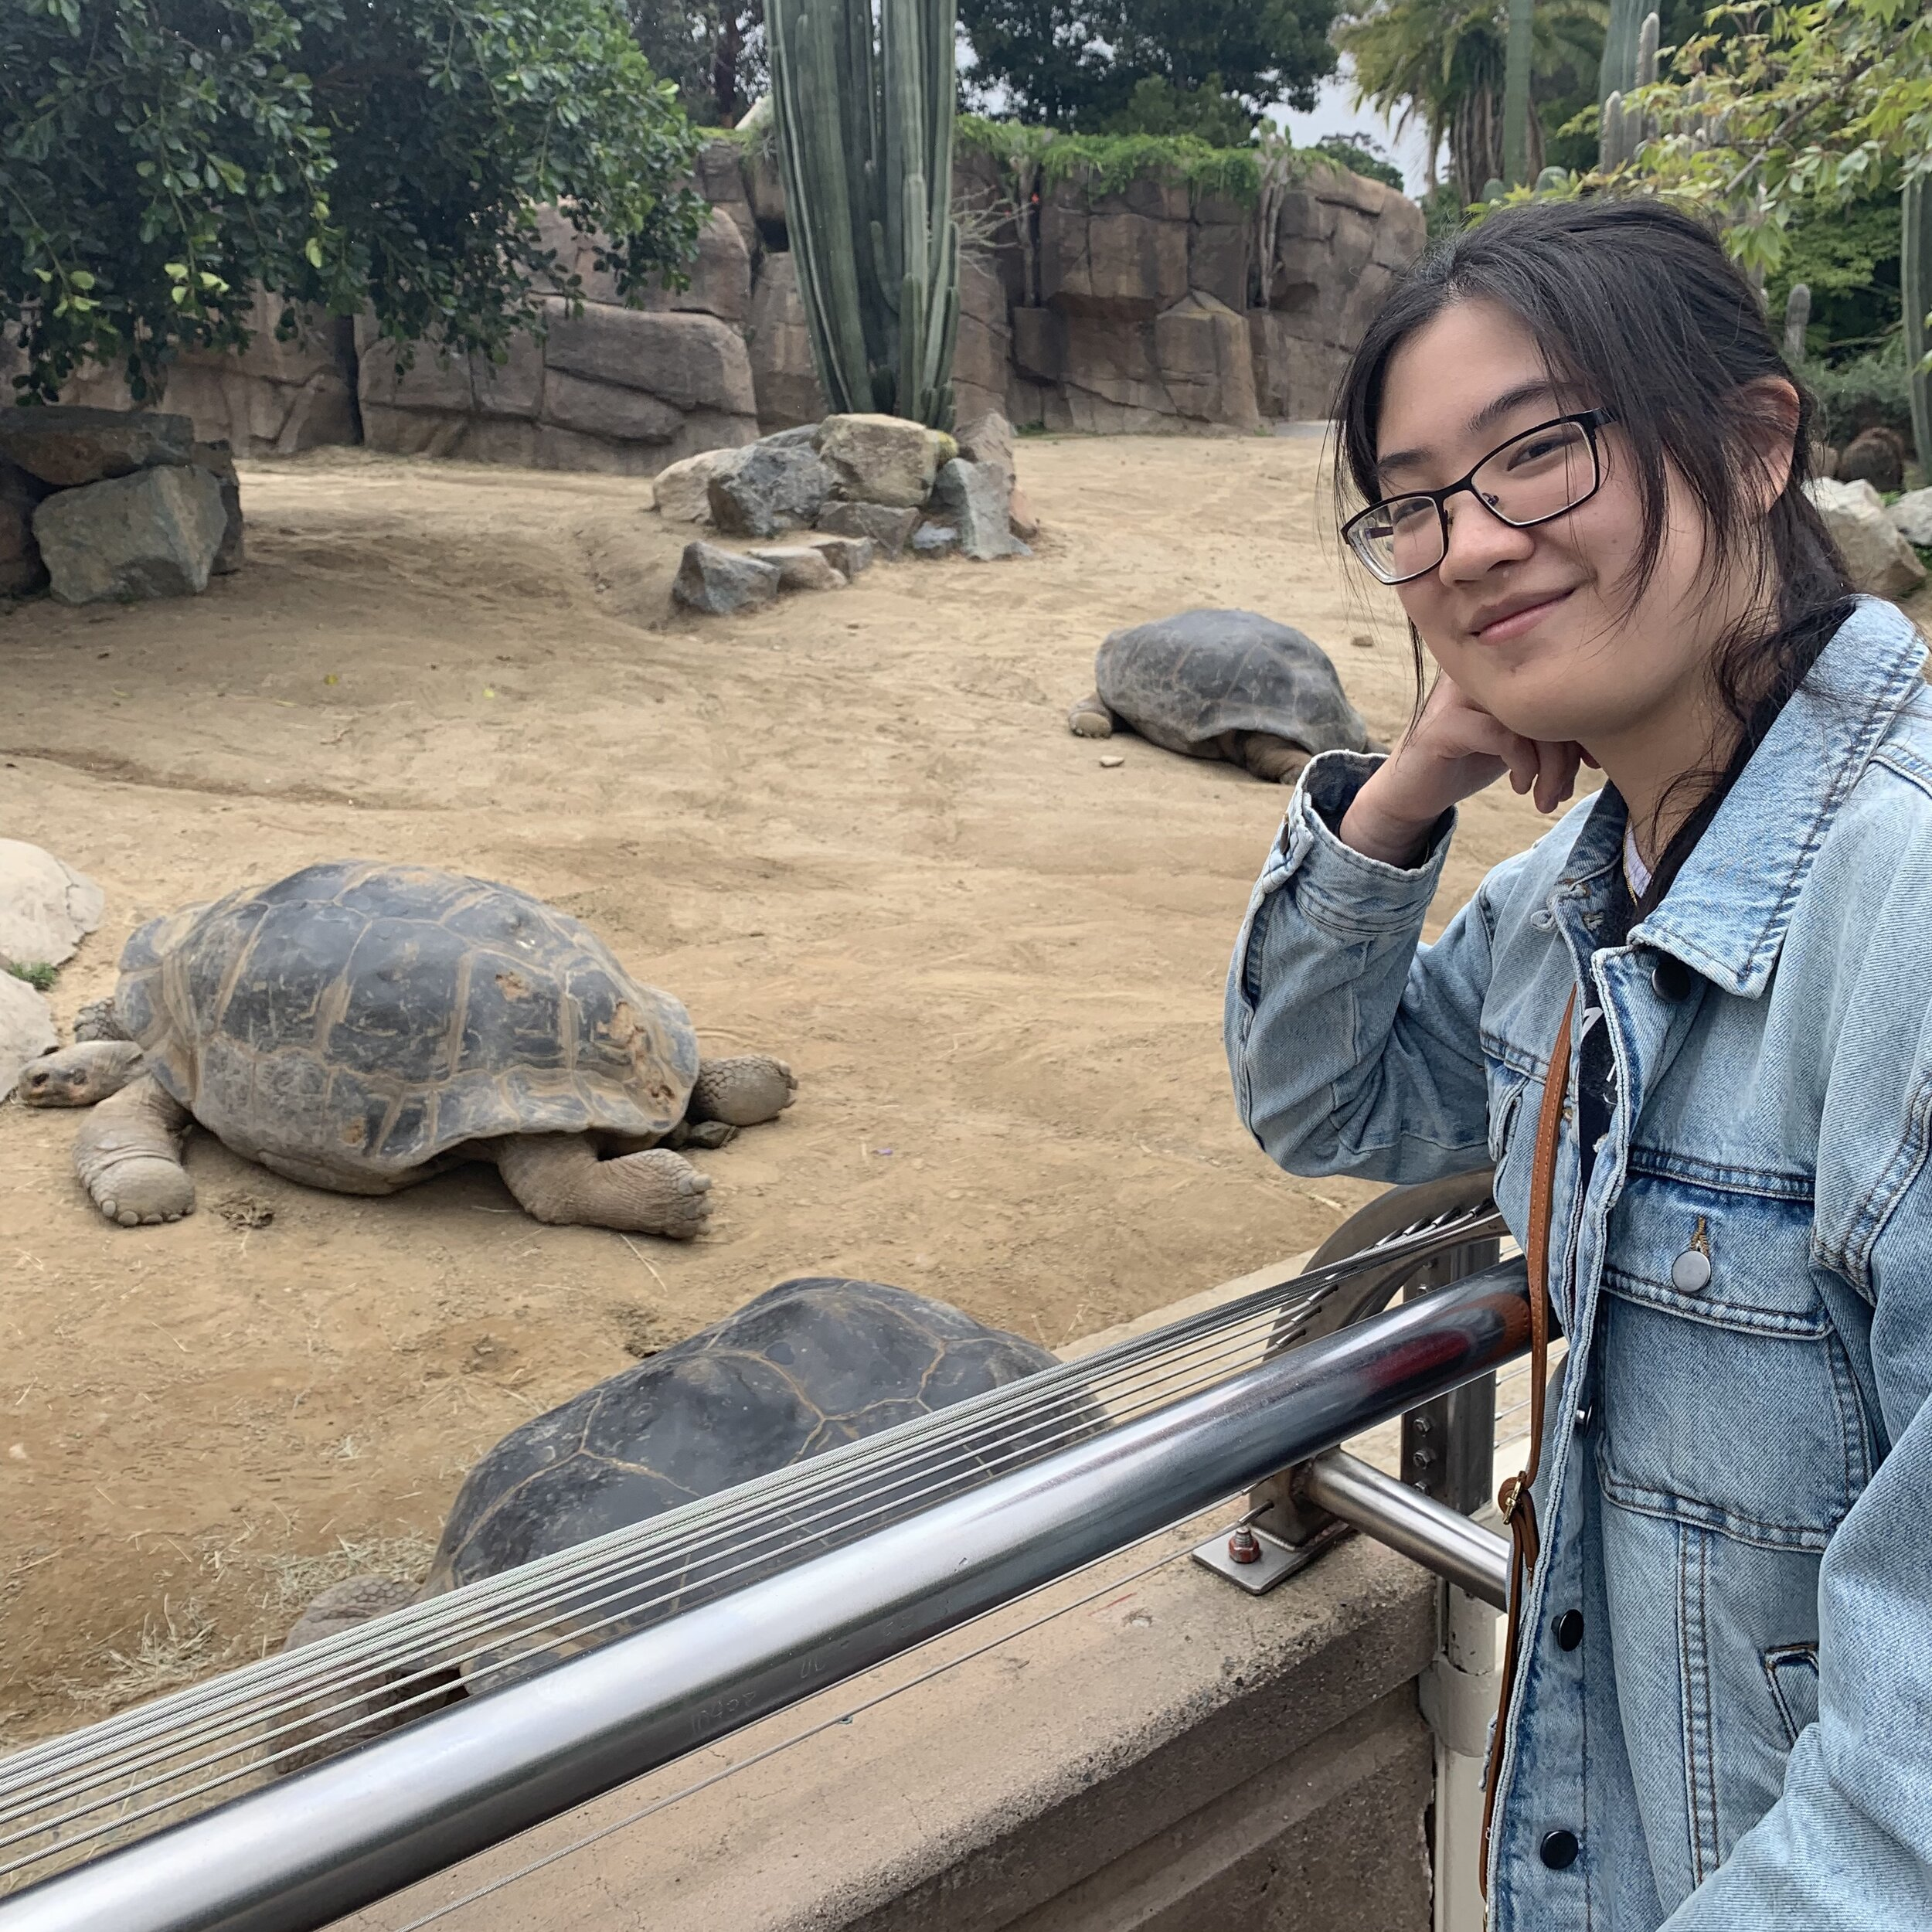 """Emily Yeh    Pronouns:  She/Her/Hers   Academic Year:  Freshman   Major:  Pre-Pharmacy   Hometown:  Monroeville, PA   Cultural Identity:  Chinese  """"I do a lot of reading, writing, and drawing. I played piano and viola for about a decade. I'm kinda introverted and a bit of an animation nerd."""""""